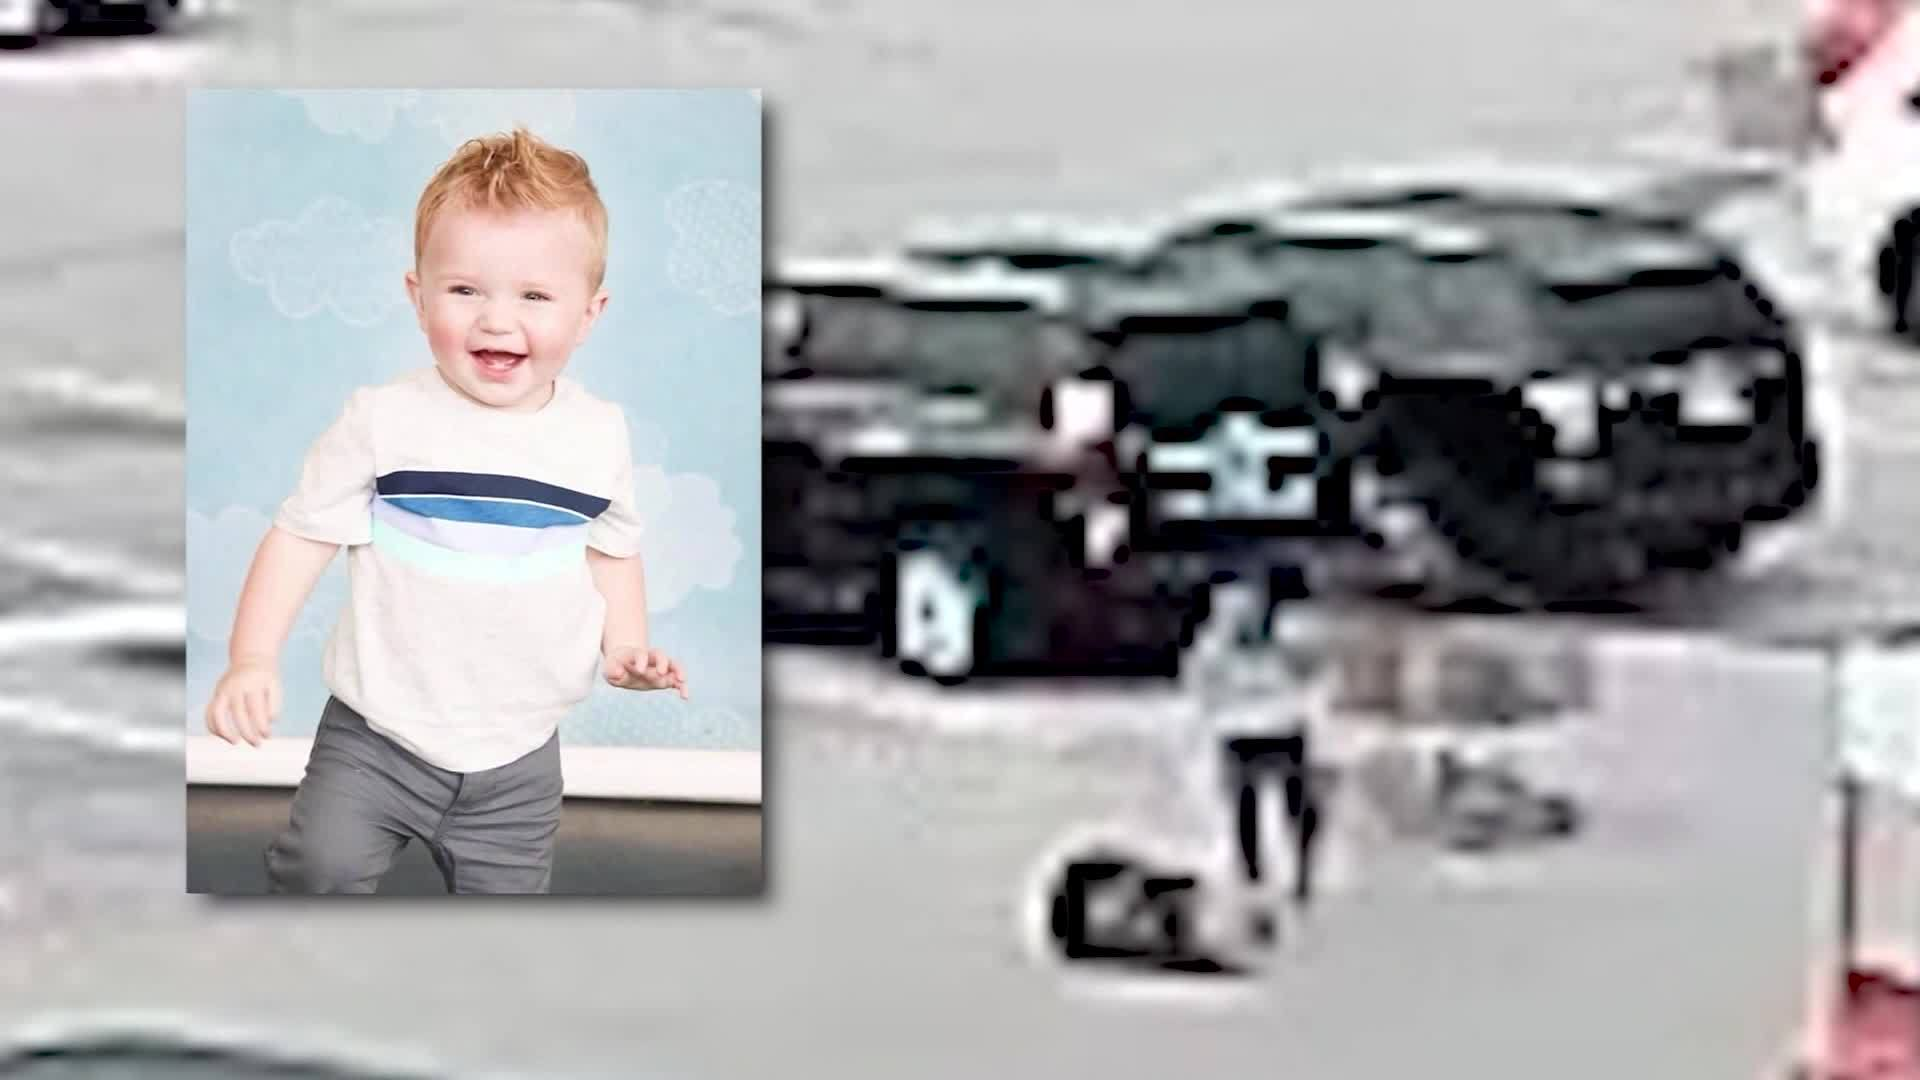 Teen_on_drugs_grabs_infant_in_car_seat_o_5_20190612092831-873704001-873704001-873704001